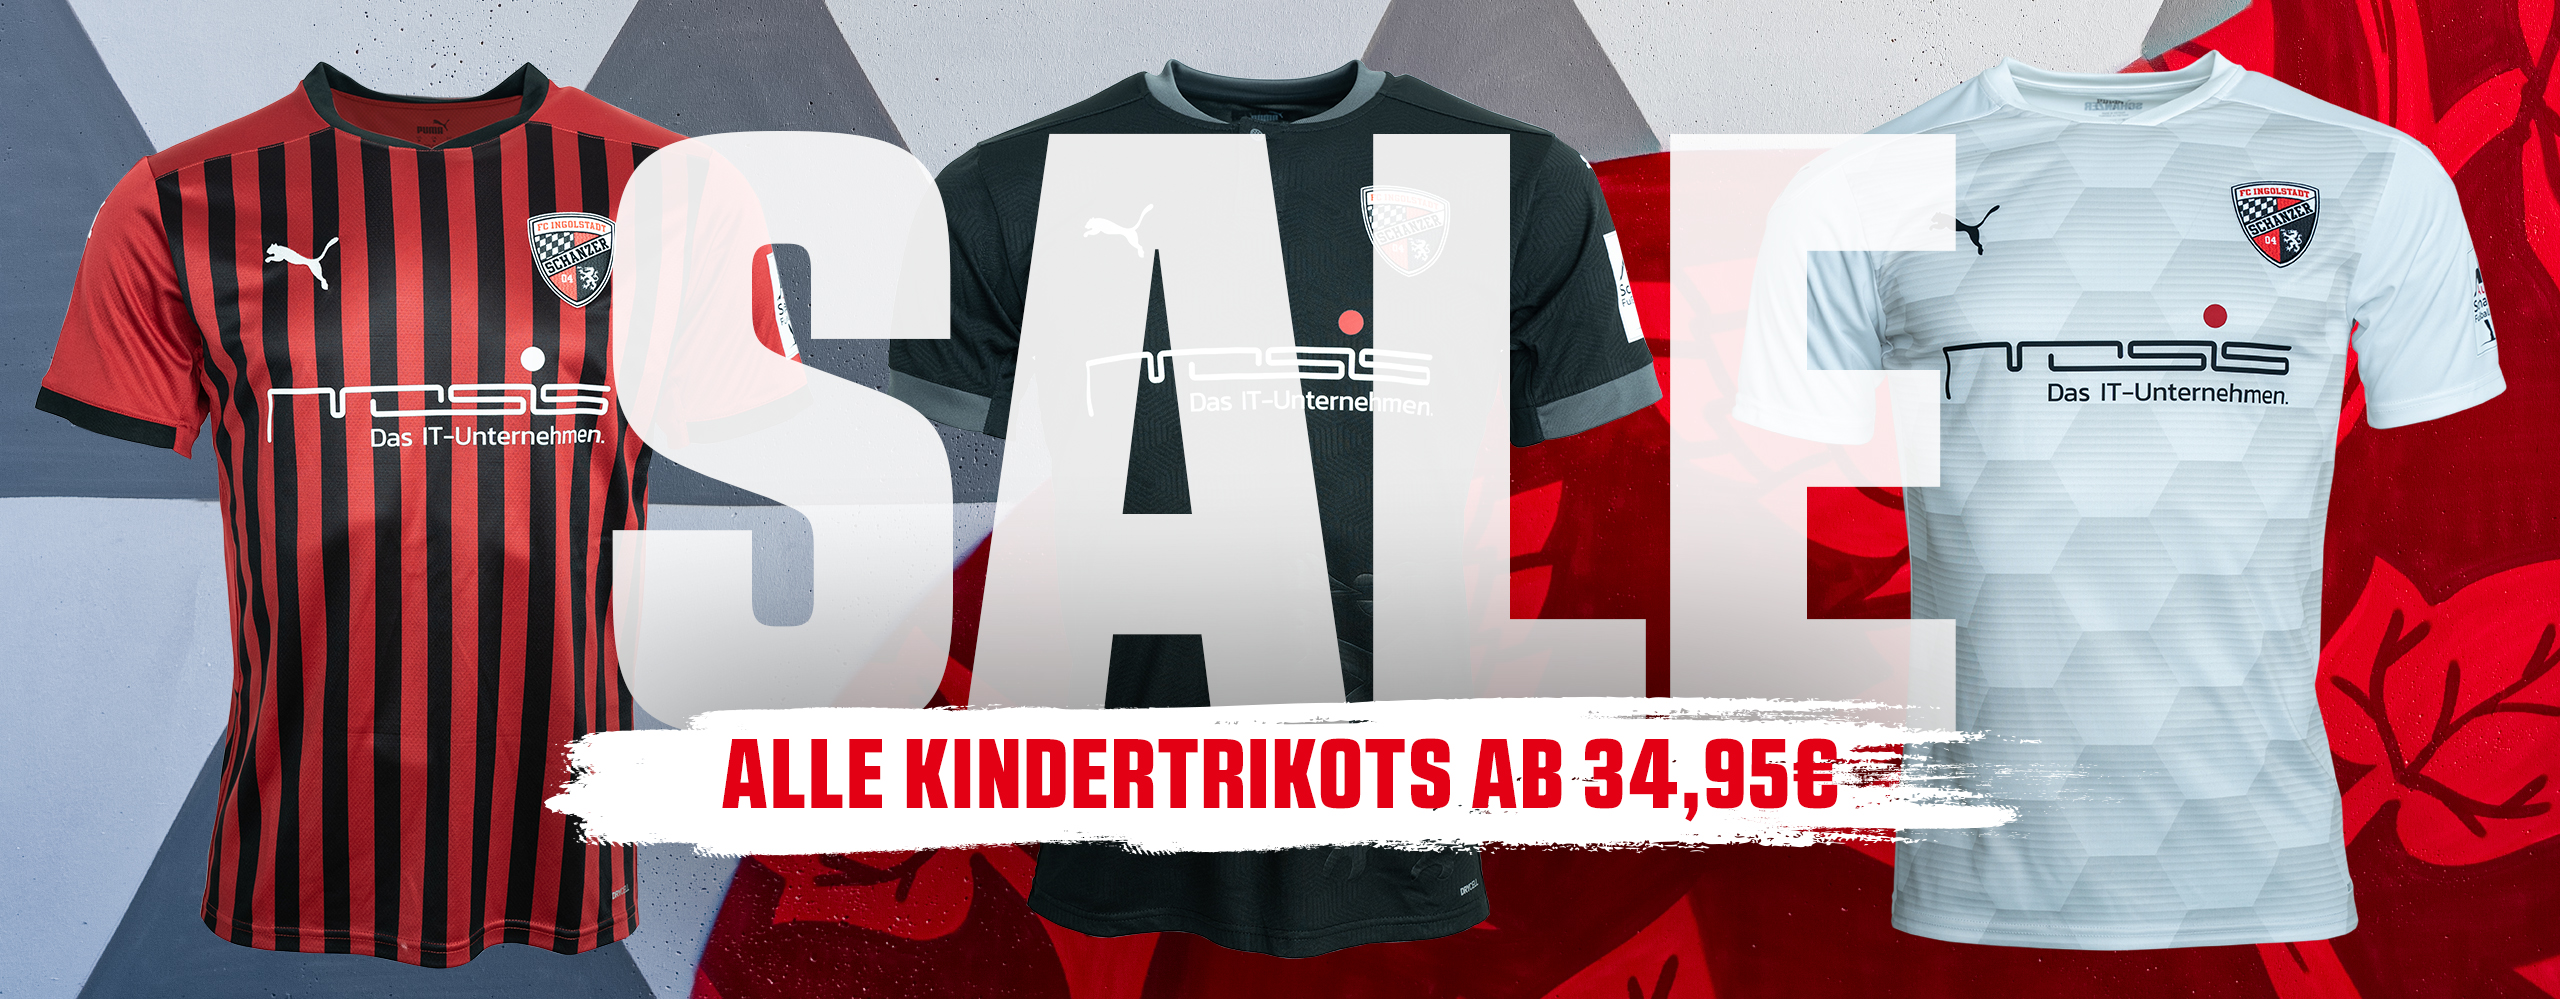 Kindertrikots SALE 2021